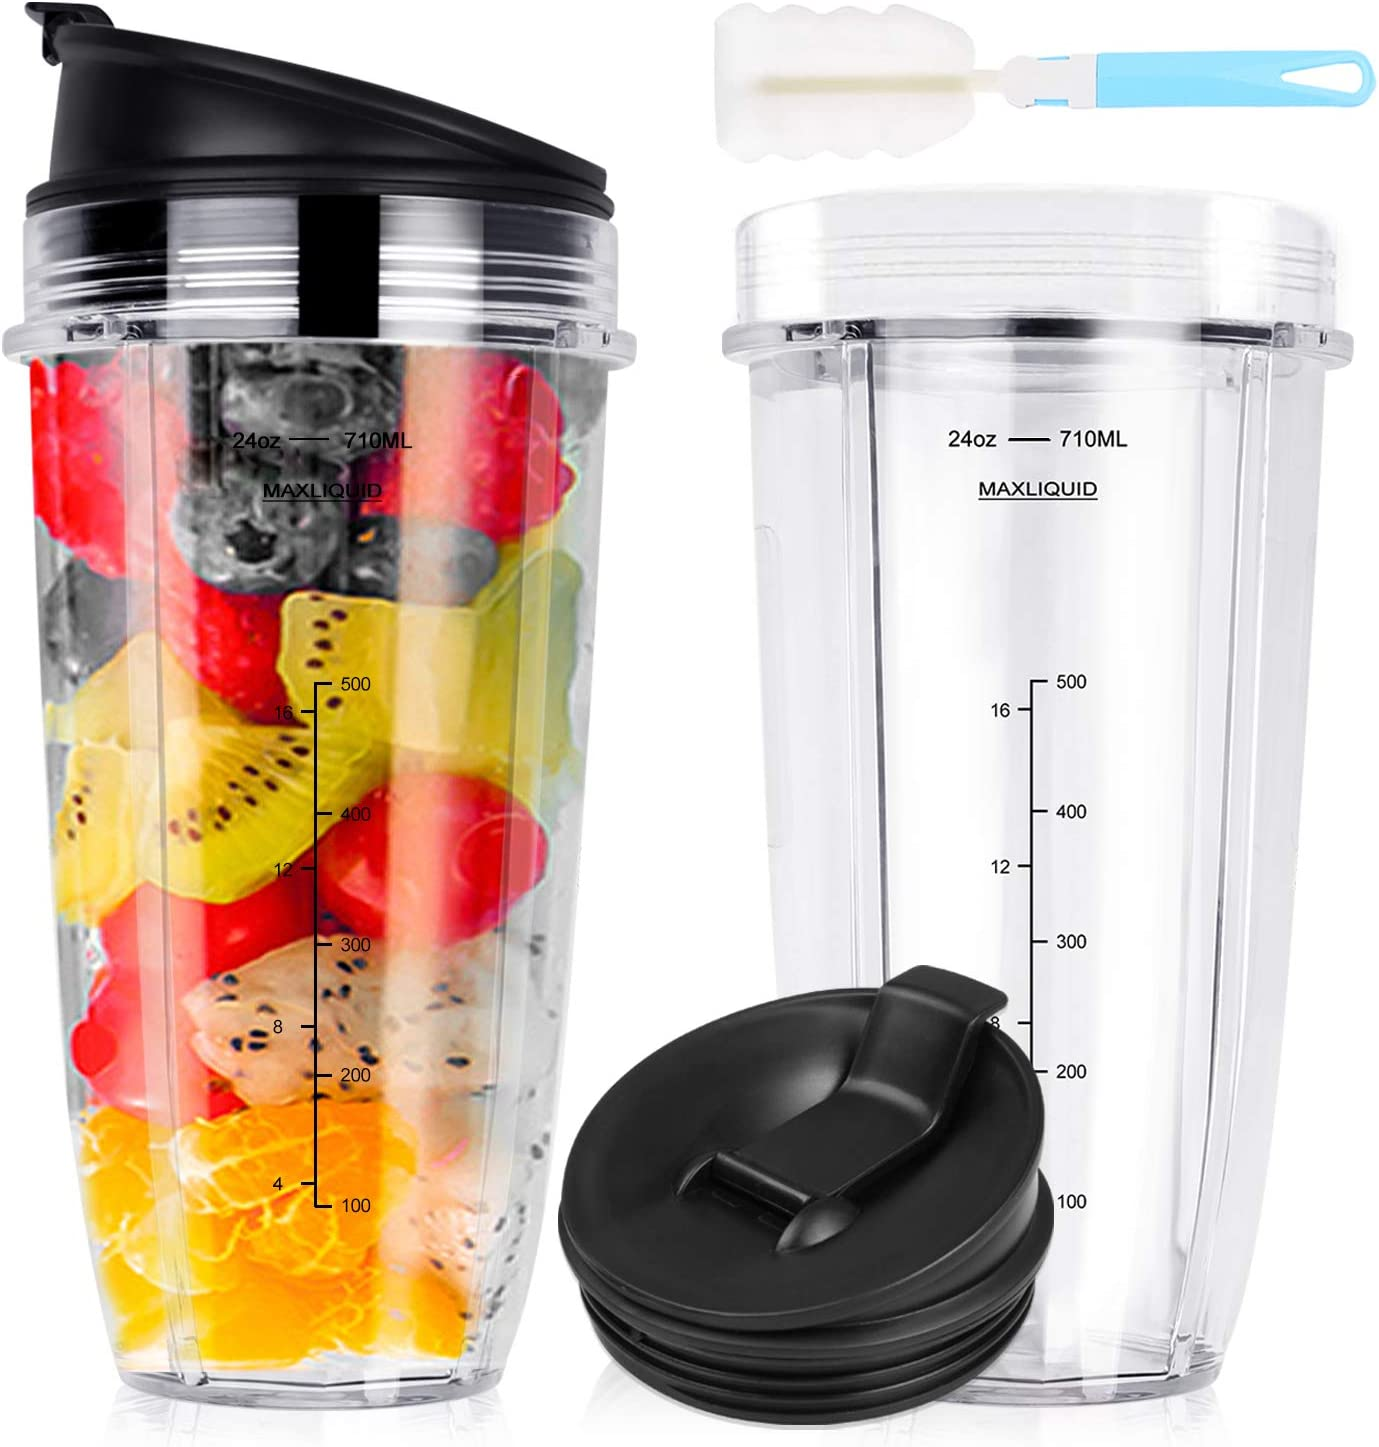 Replacement blender For Nutri Ninja 24 Oz Cups Auto iQ BL450 BL454 BL456 BL480 BL481 BL482 BL490 BL640 BL642 BL682 Nutri Ninja Blender Auto iQ Series with Seal Lid & 1pc Brush (2 Pack) (24OZ)